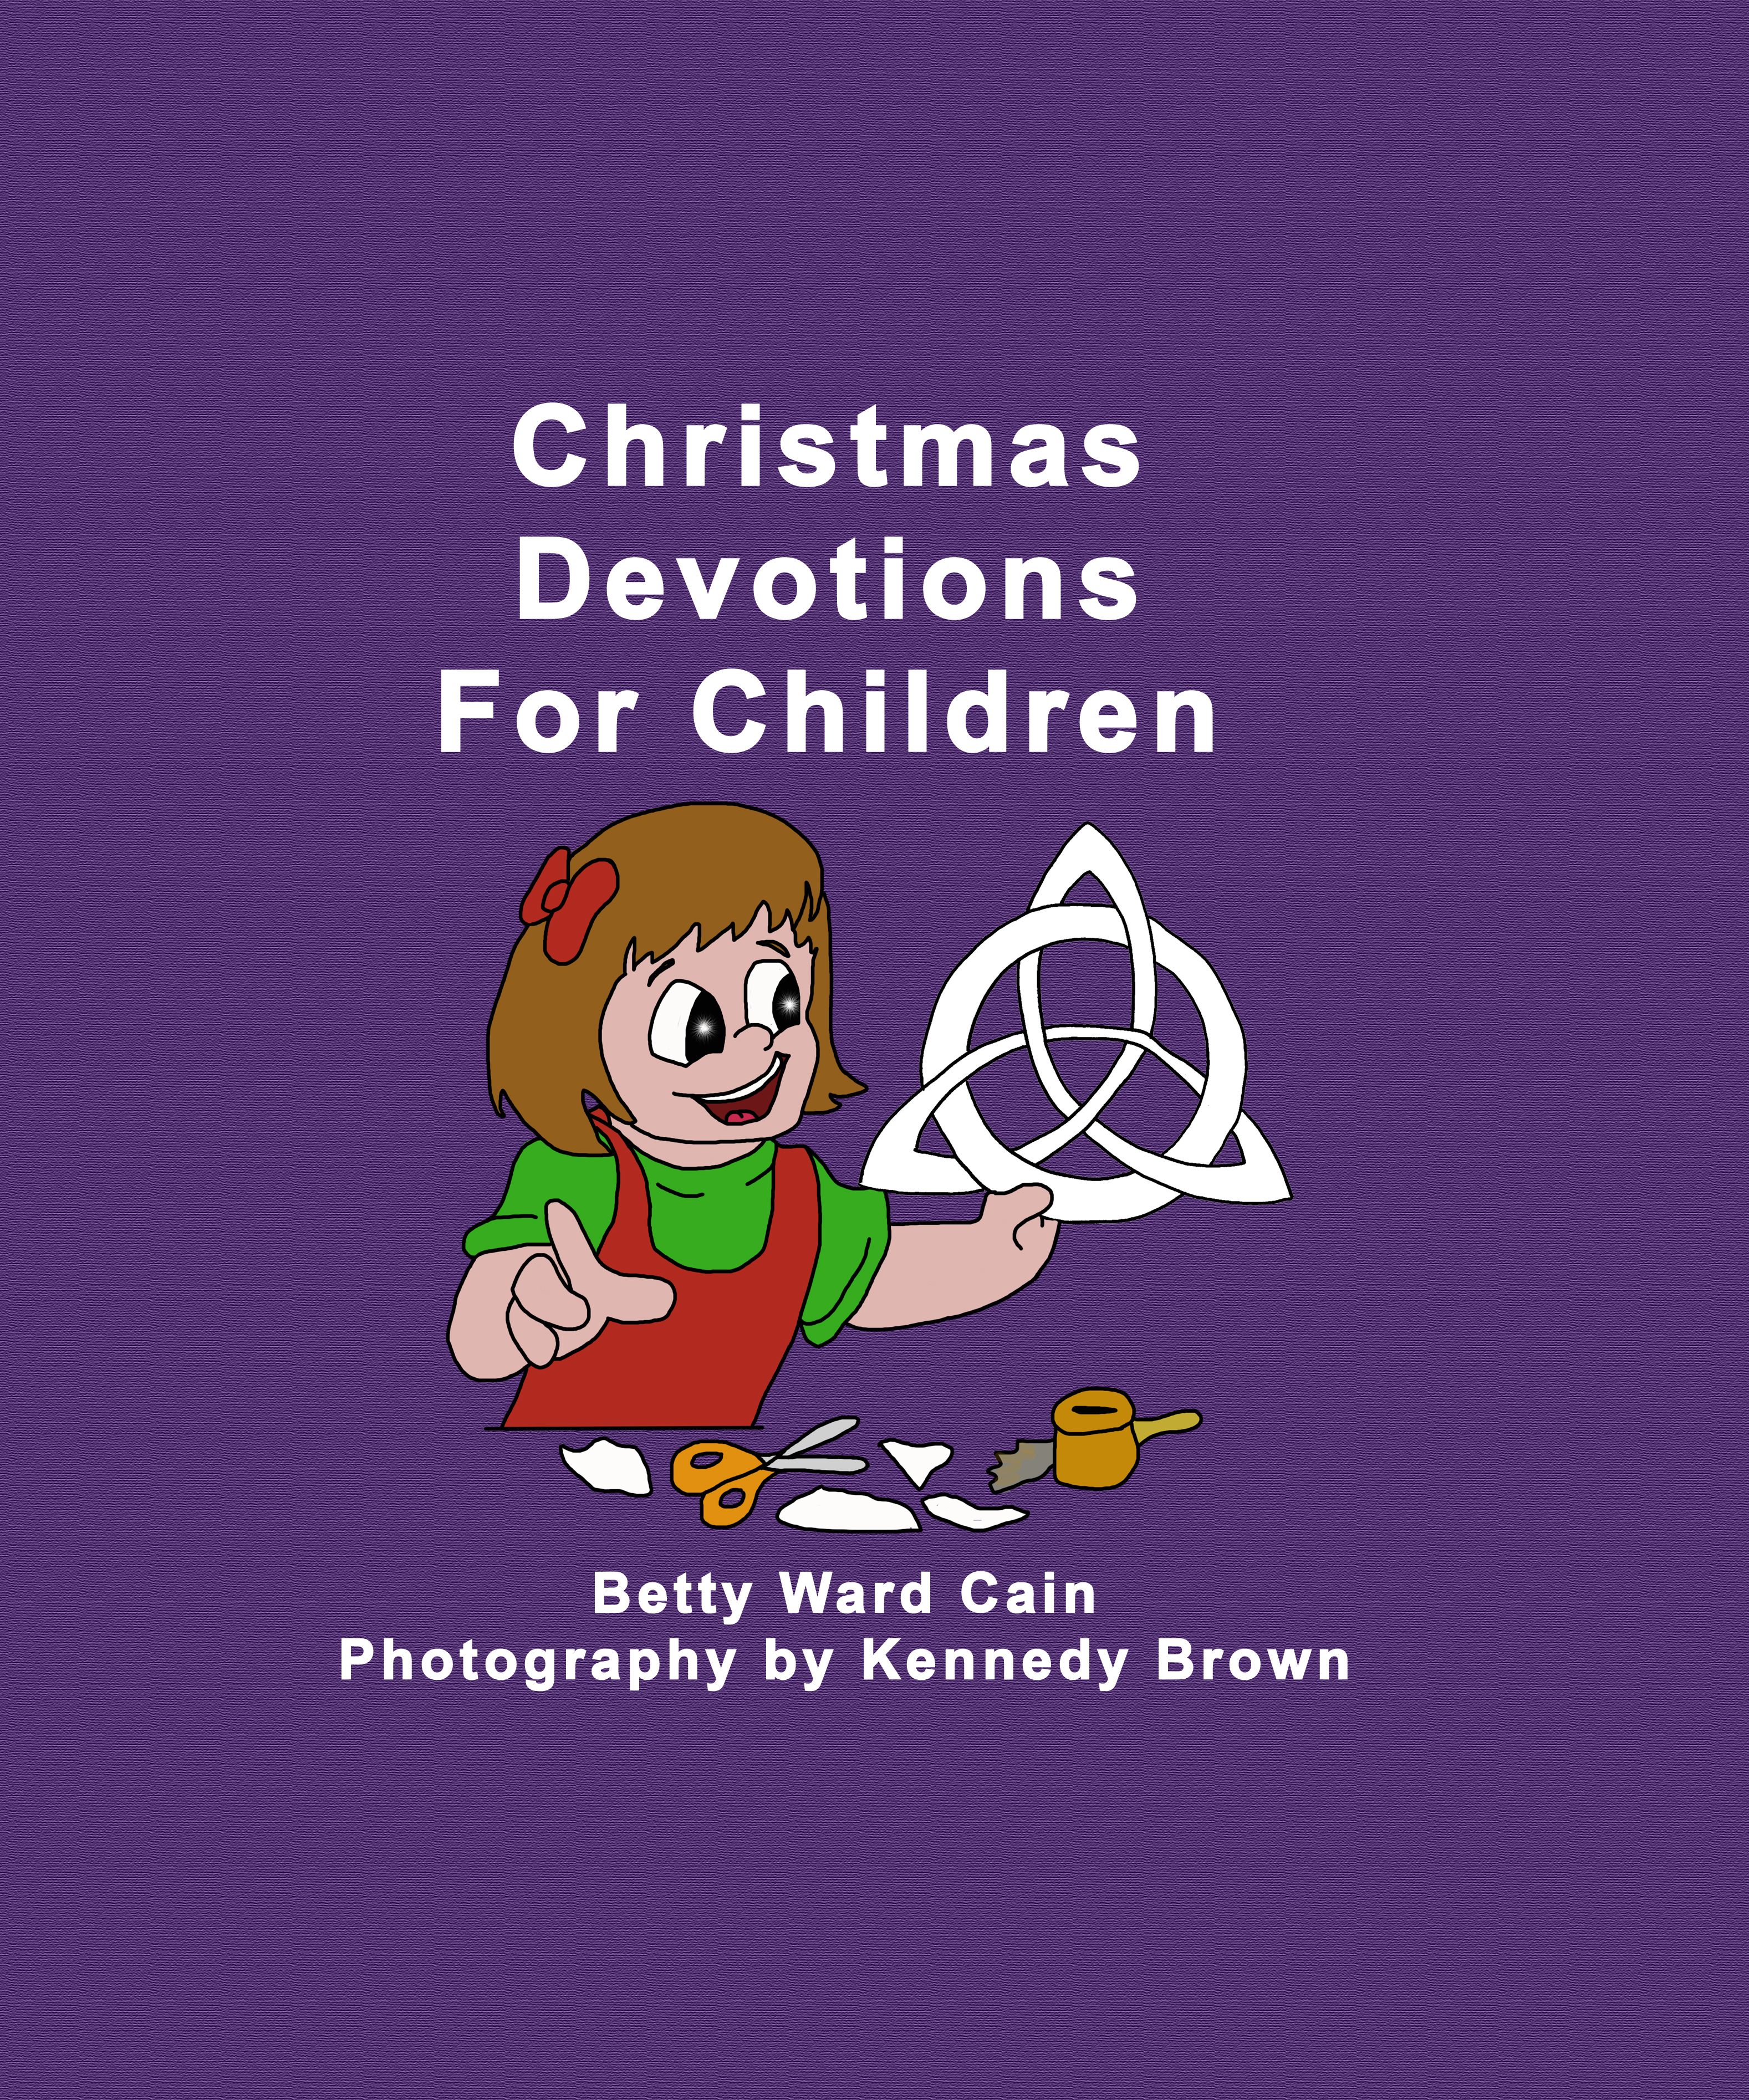 Christmas Devotions For Children